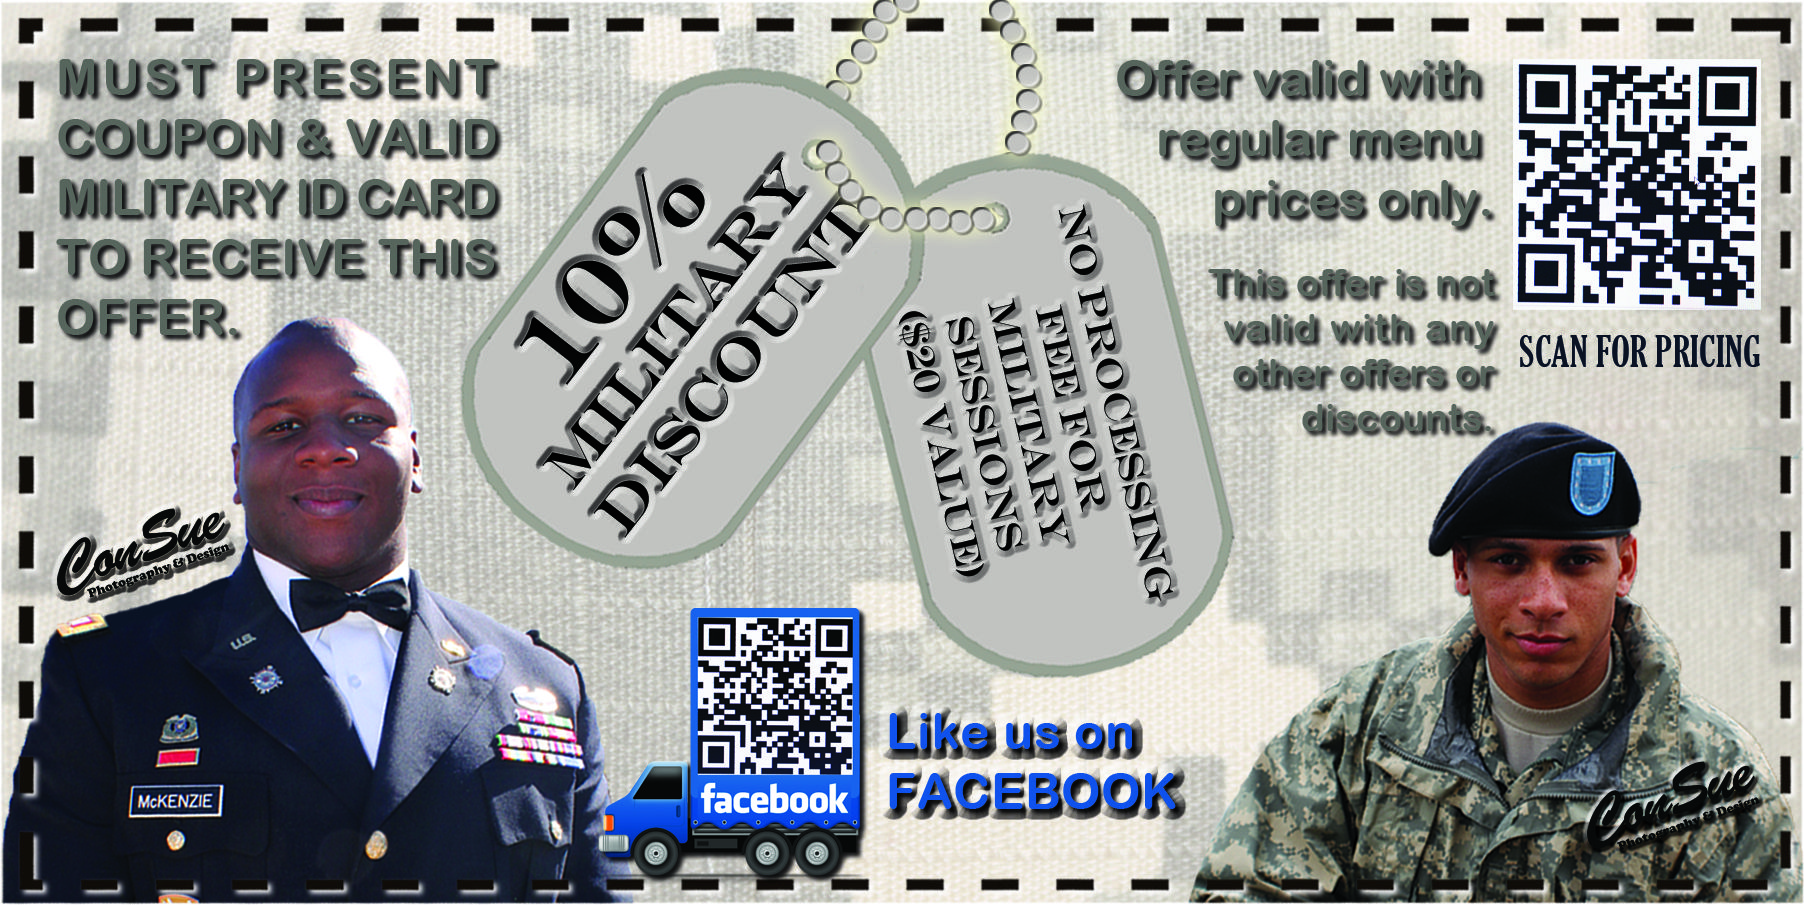 Military discount requires valid military ID & coupon